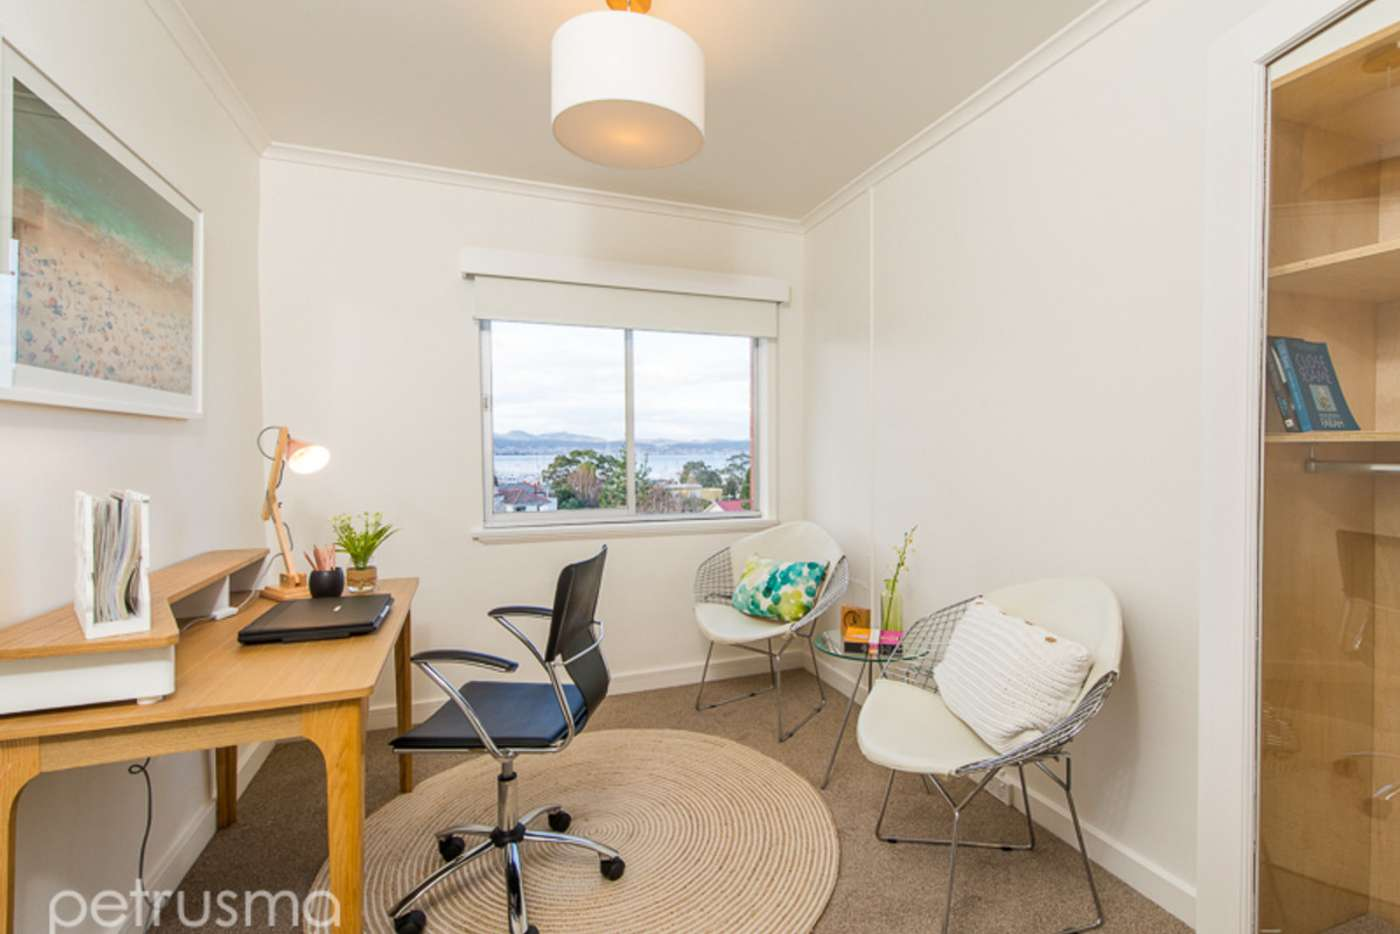 Sixth view of Homely apartment listing, 11/7 View Street, Sandy Bay TAS 7005